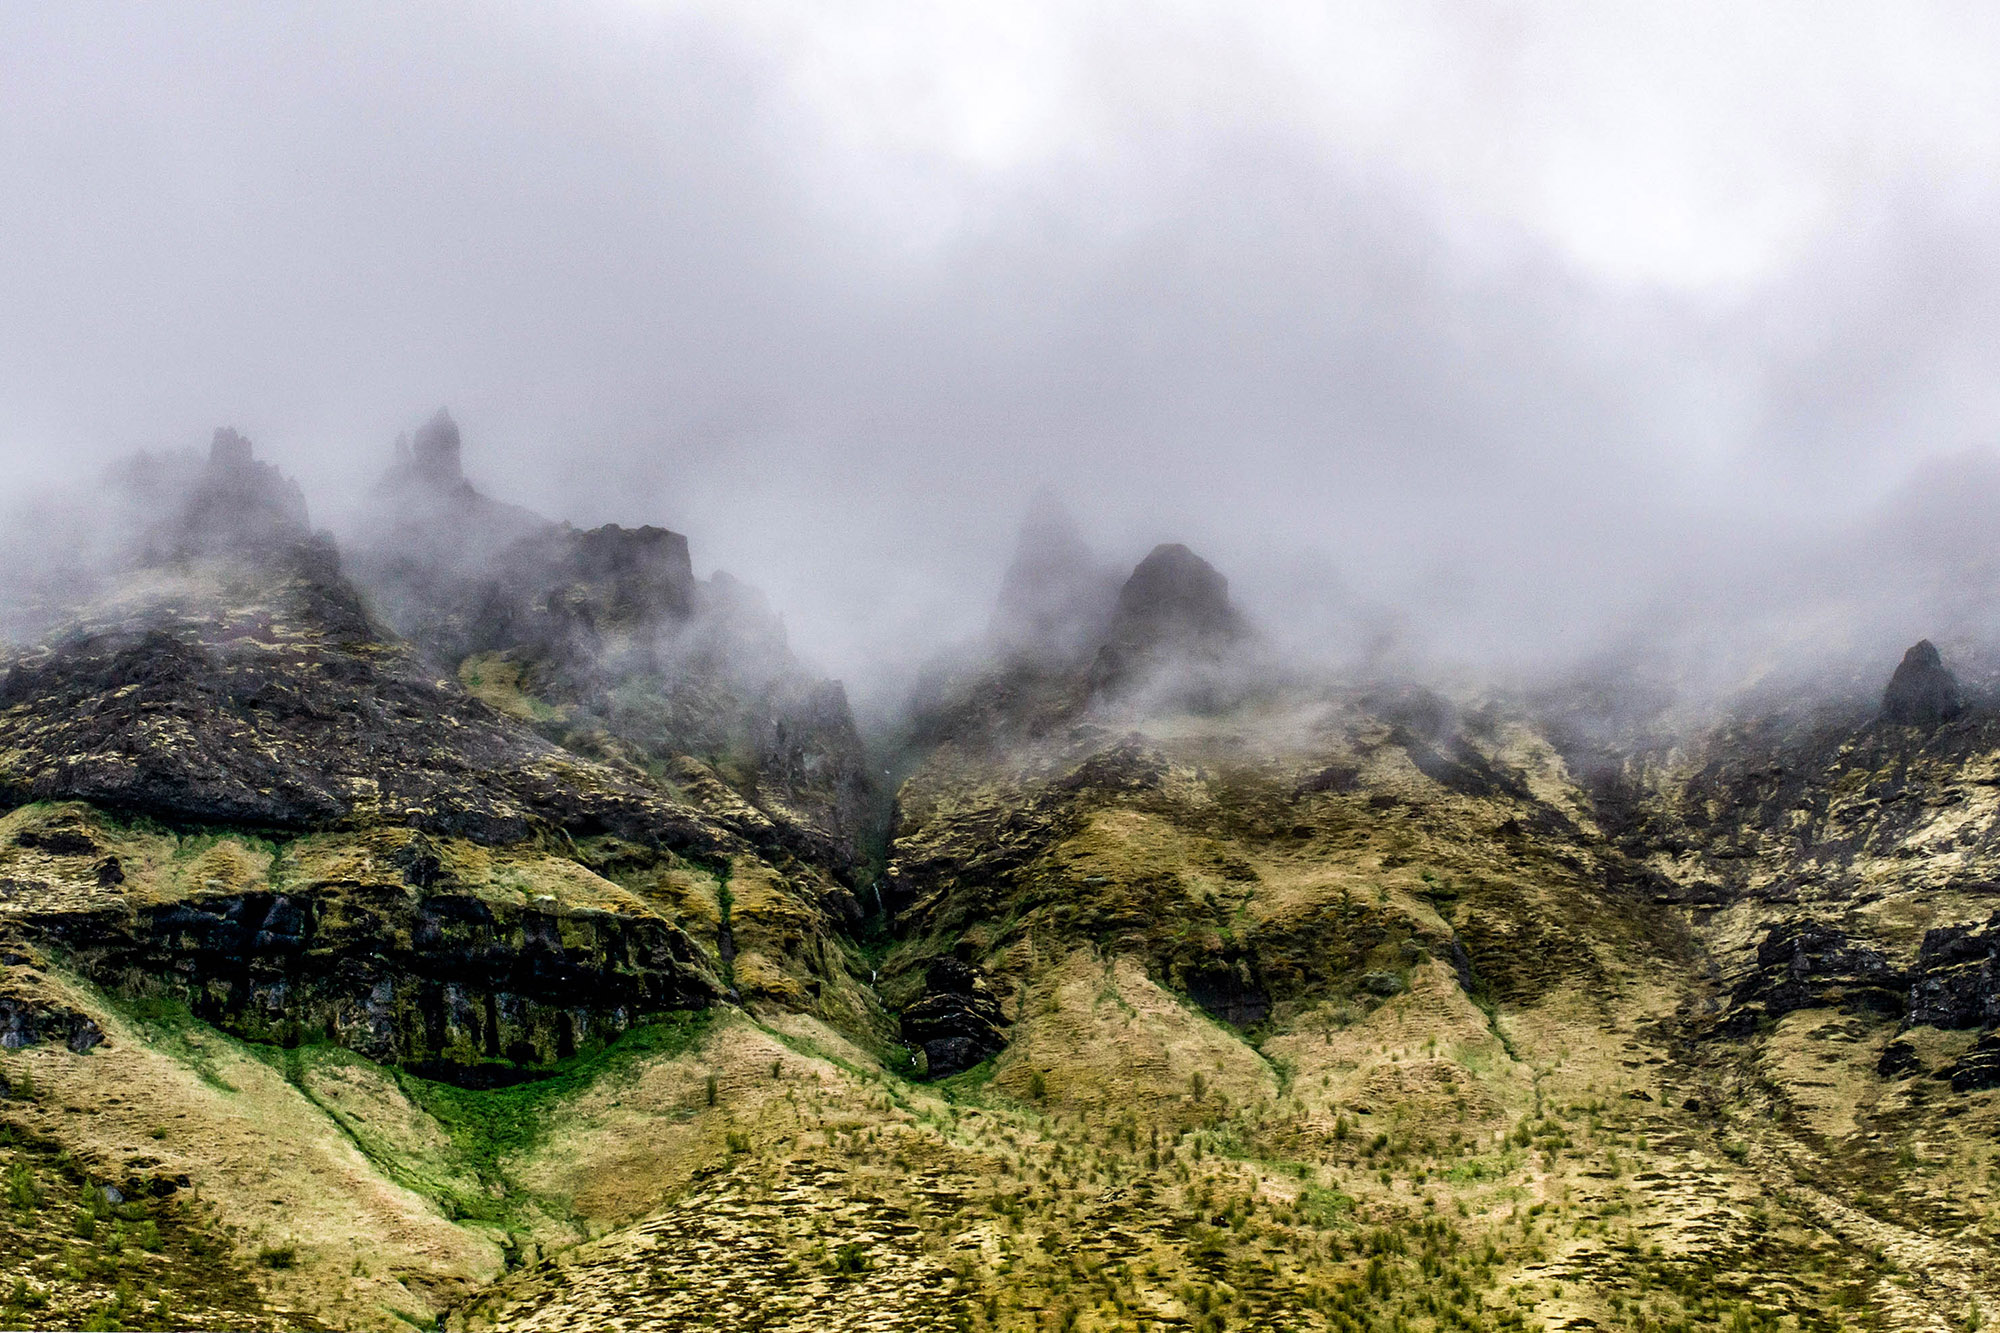 Epic surreal Landscape in Iceland with green grass and rocks in fog clouds foggy mountains